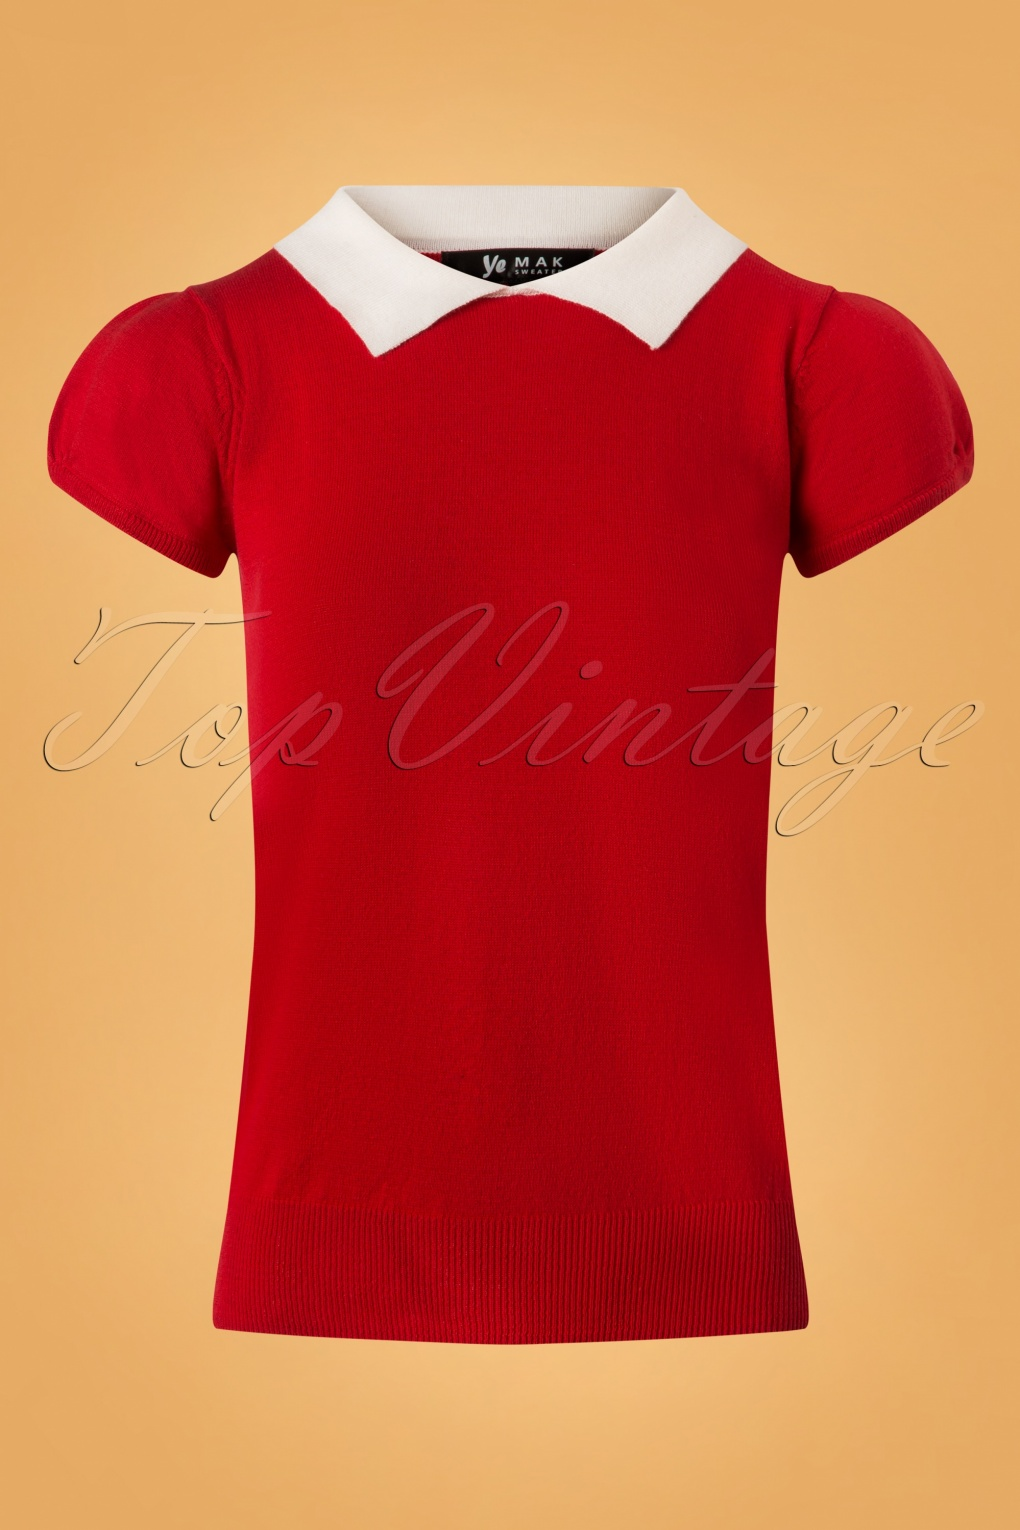 1960s Style Dresses, Clothing, Shoes UK 60s Kristen Polo Sweater in Red and Ivory £26.21 AT vintagedancer.com